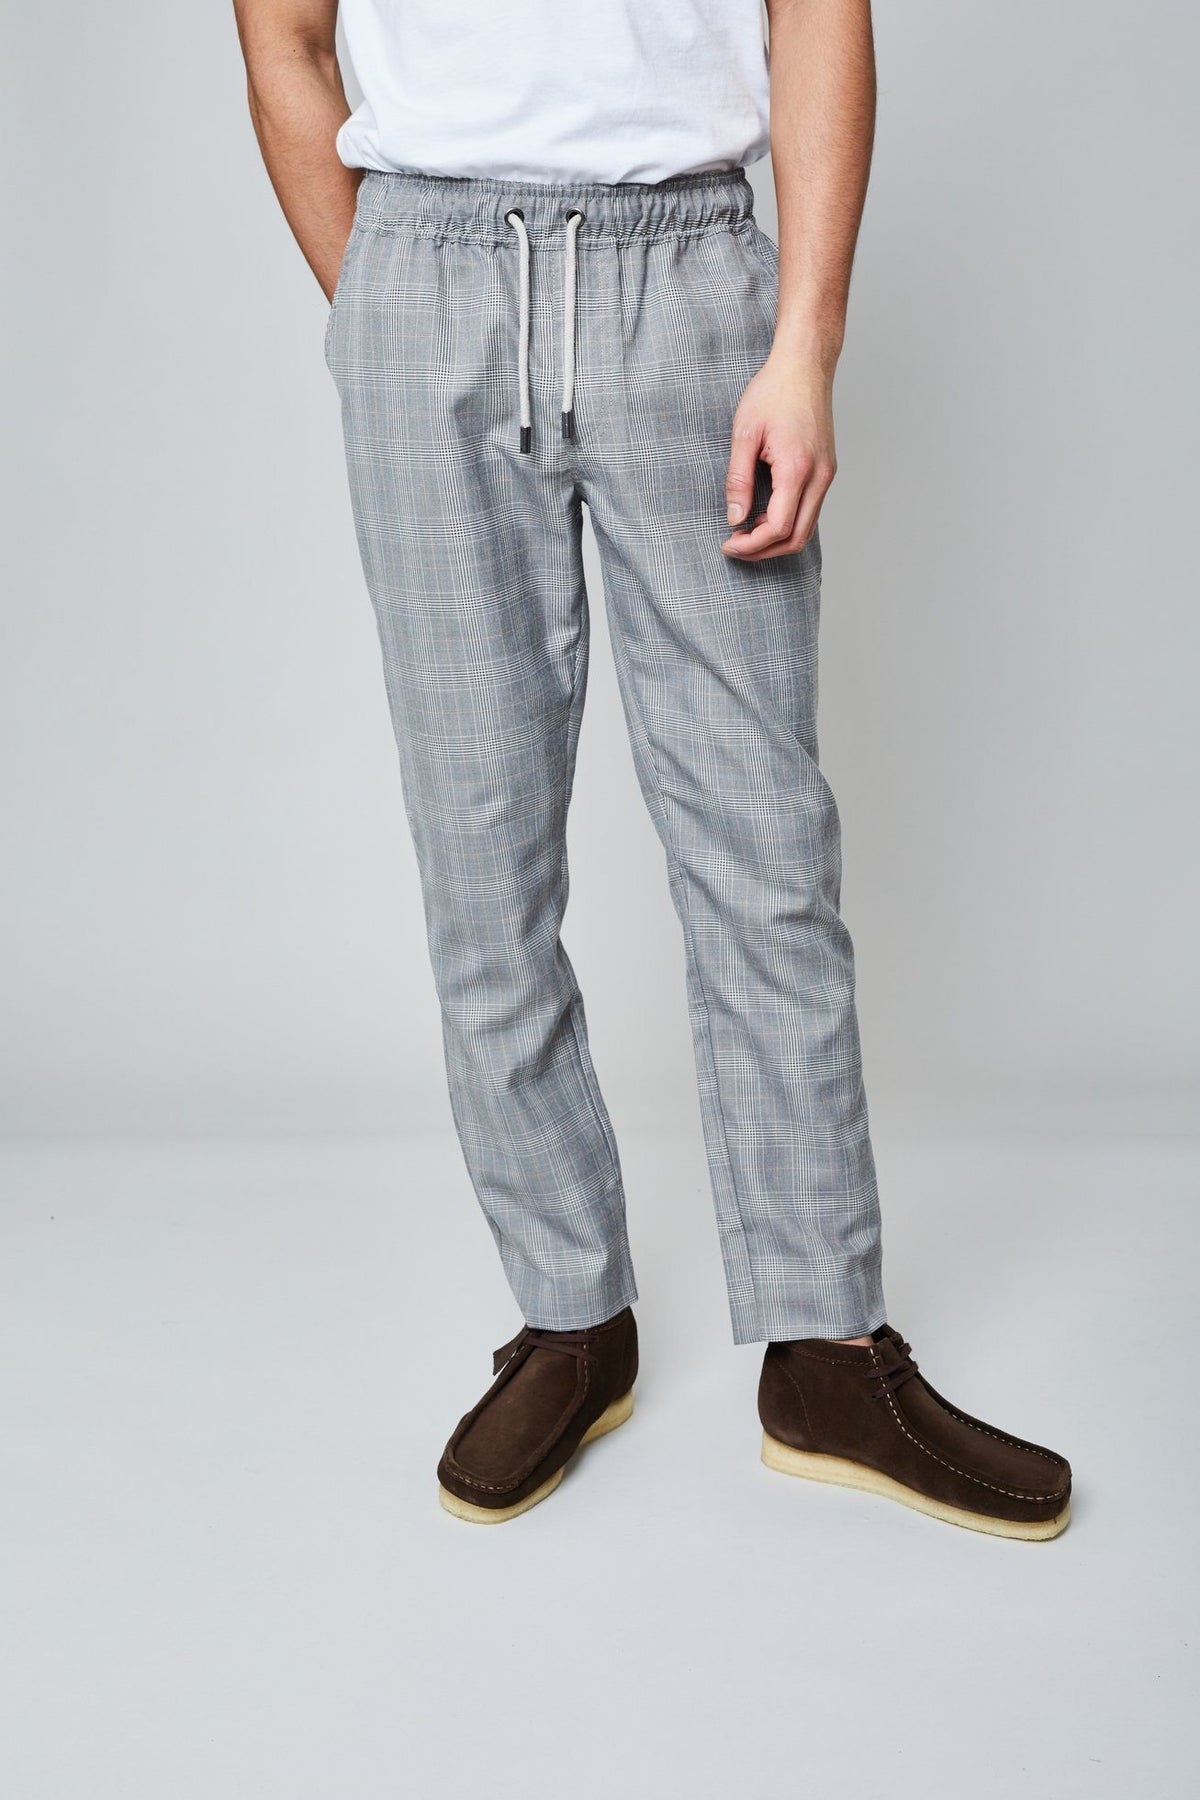 THE MARQUES TROUSER